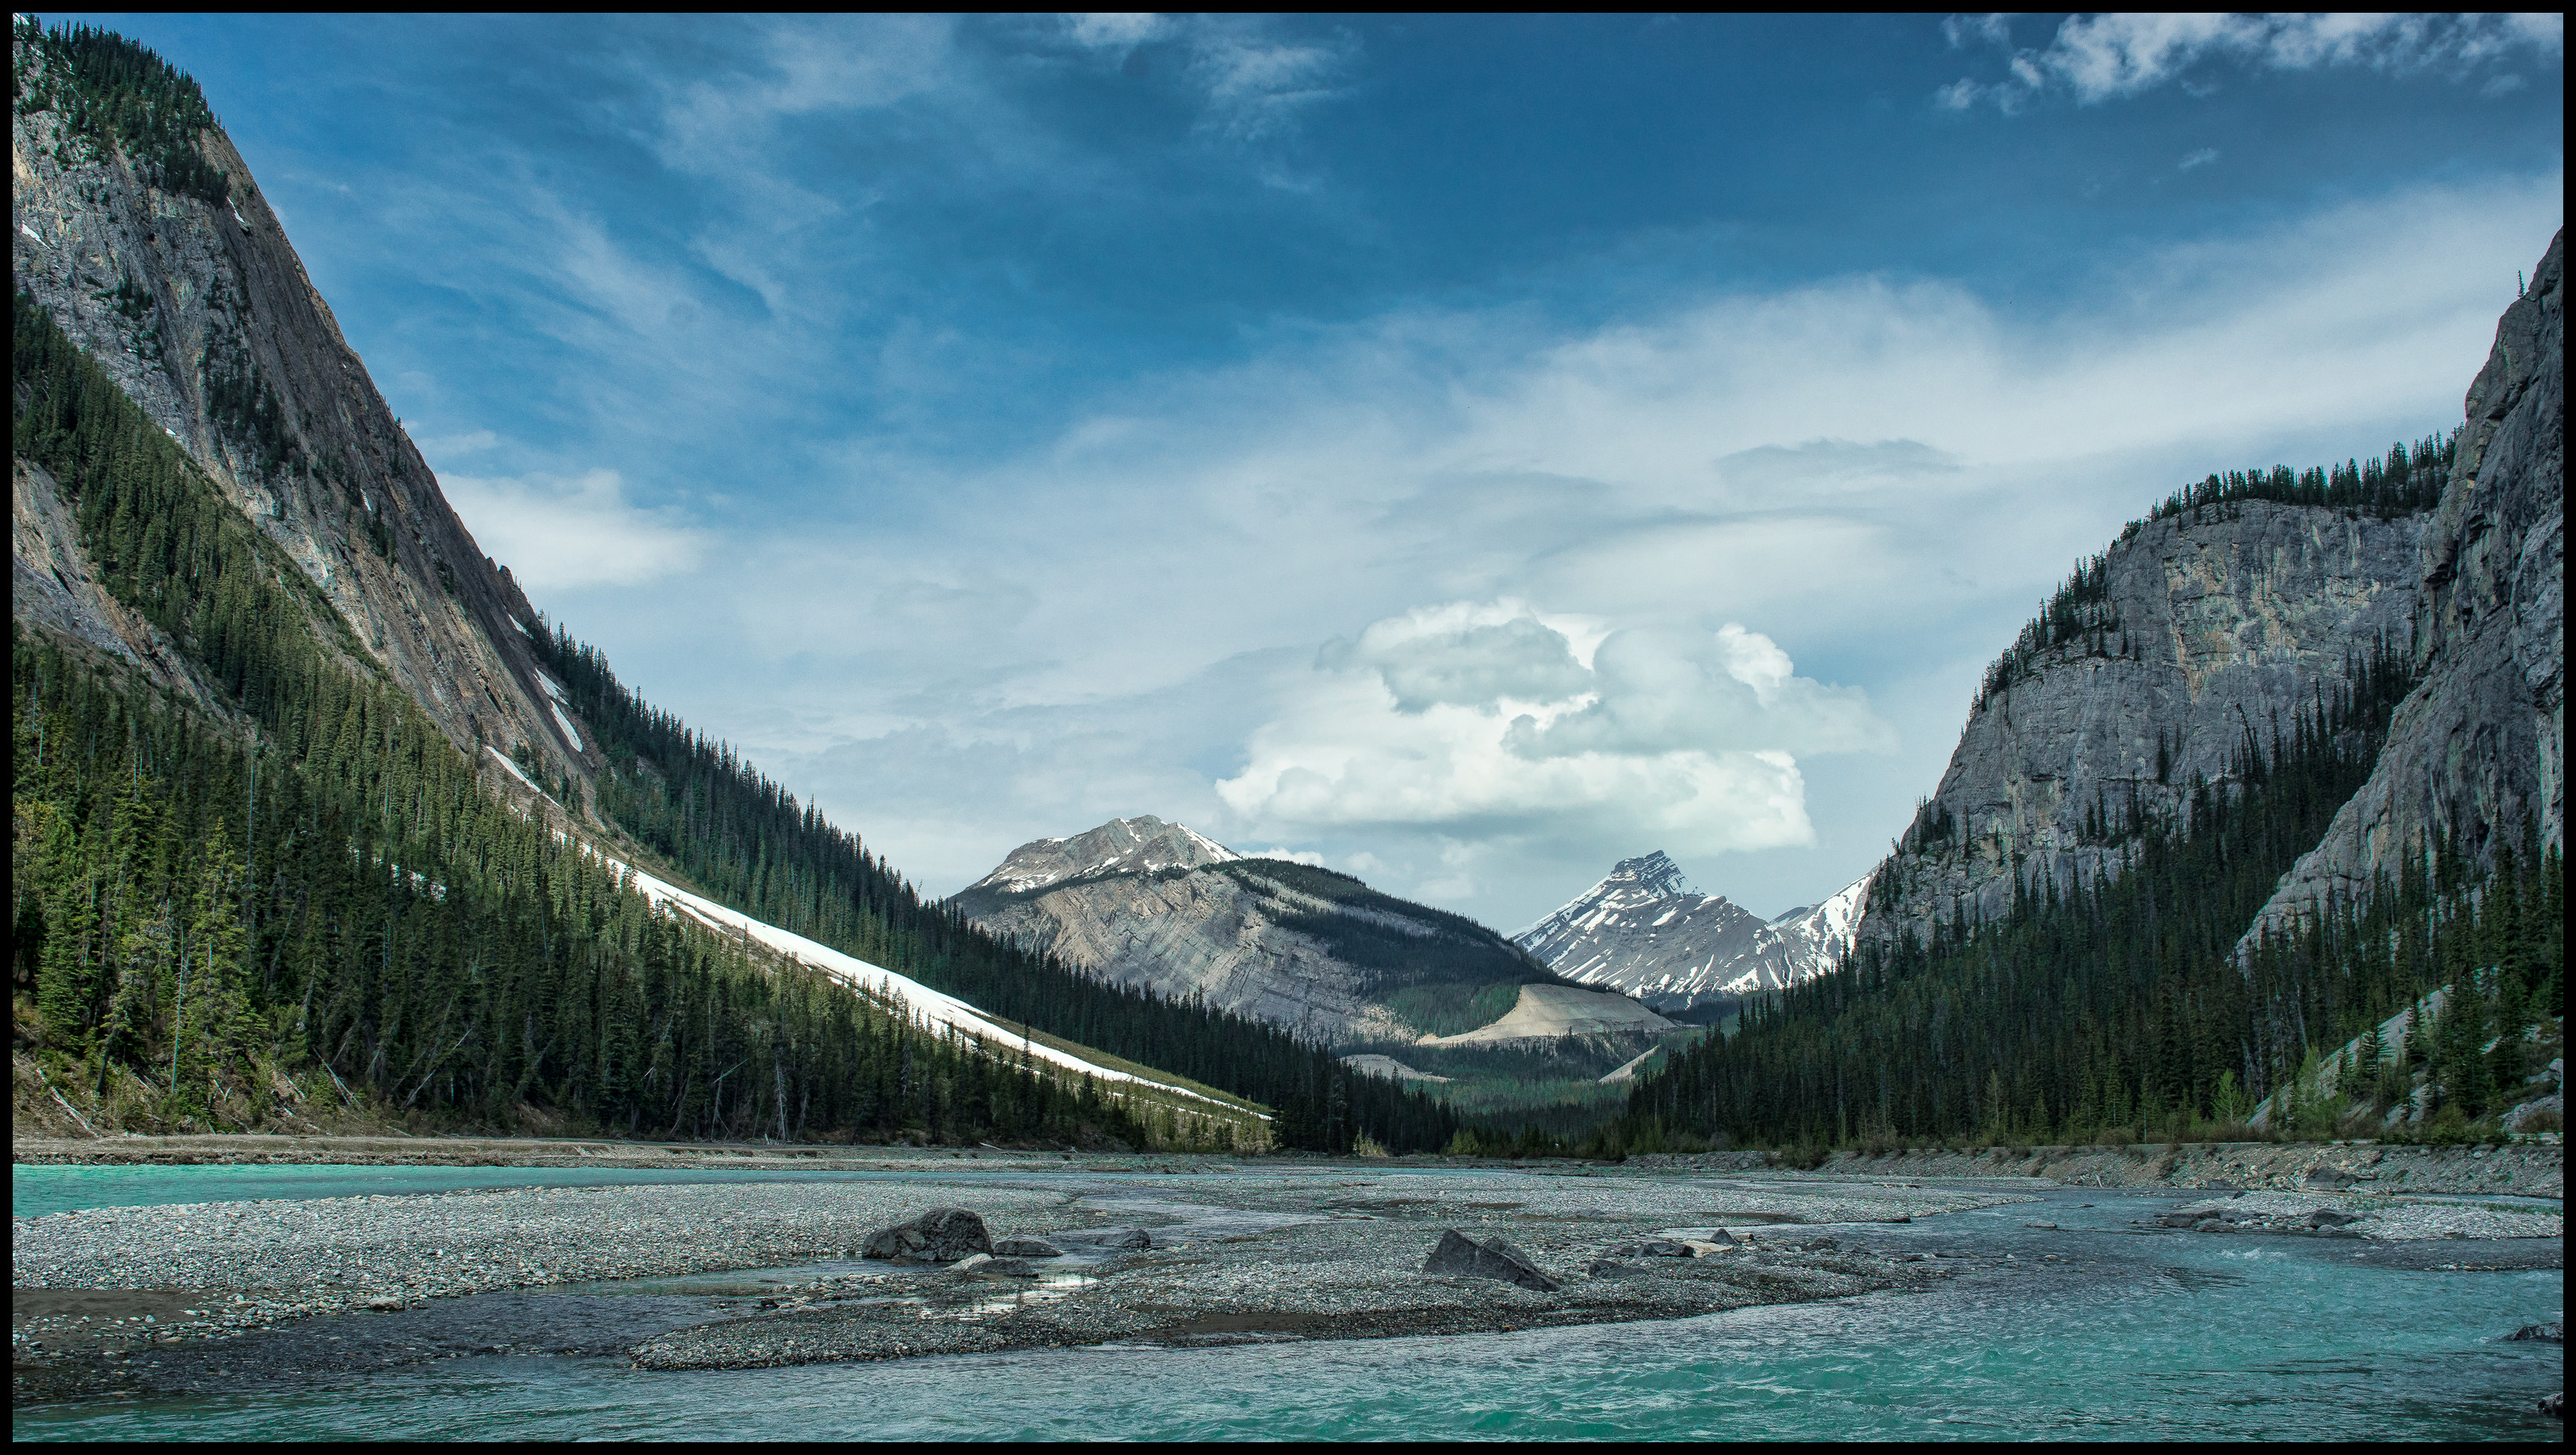 Icefields Parkway Sony A7 / Canon FD Tilt Shift 35 2.8